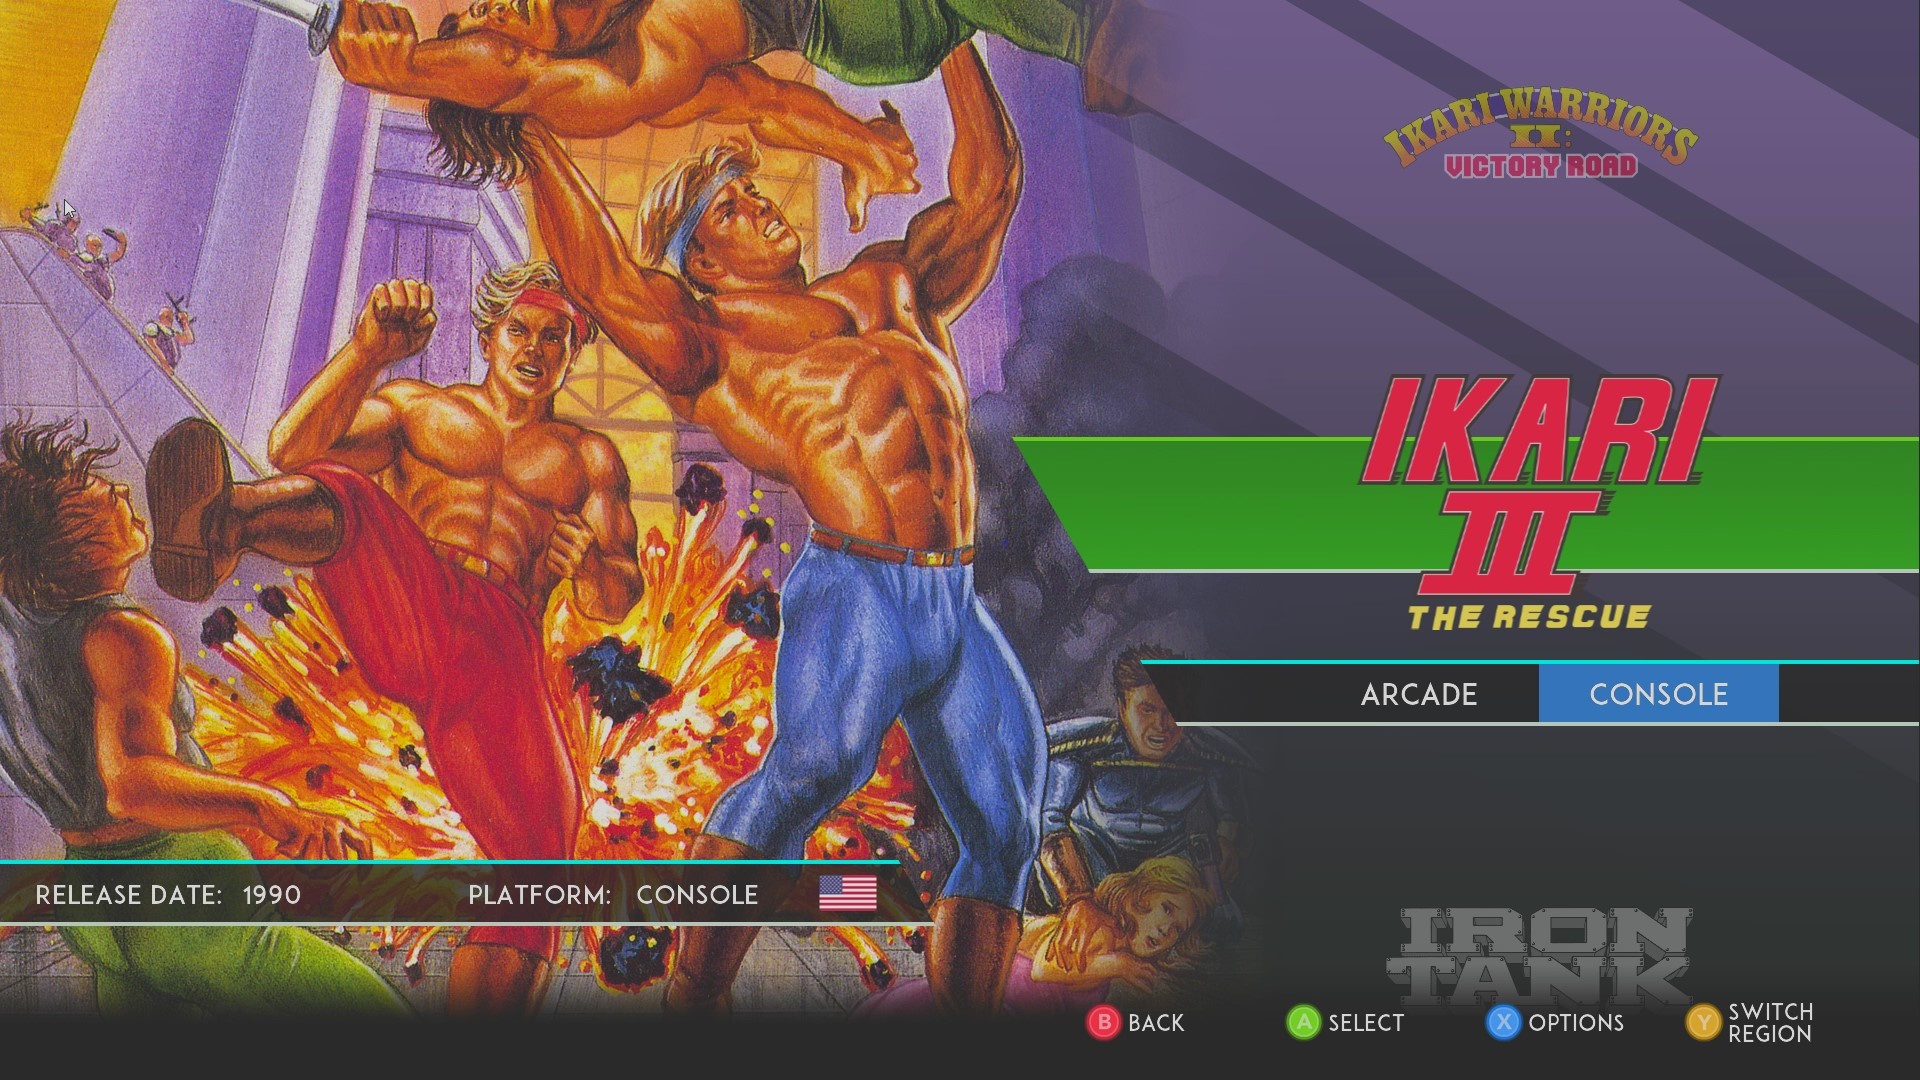 AkinNahtanoj: SNK 40th Anniversary Collection: Ikari III: The Rescue [Console] (PC) 16,200 points on 2020-08-24 03:57:29